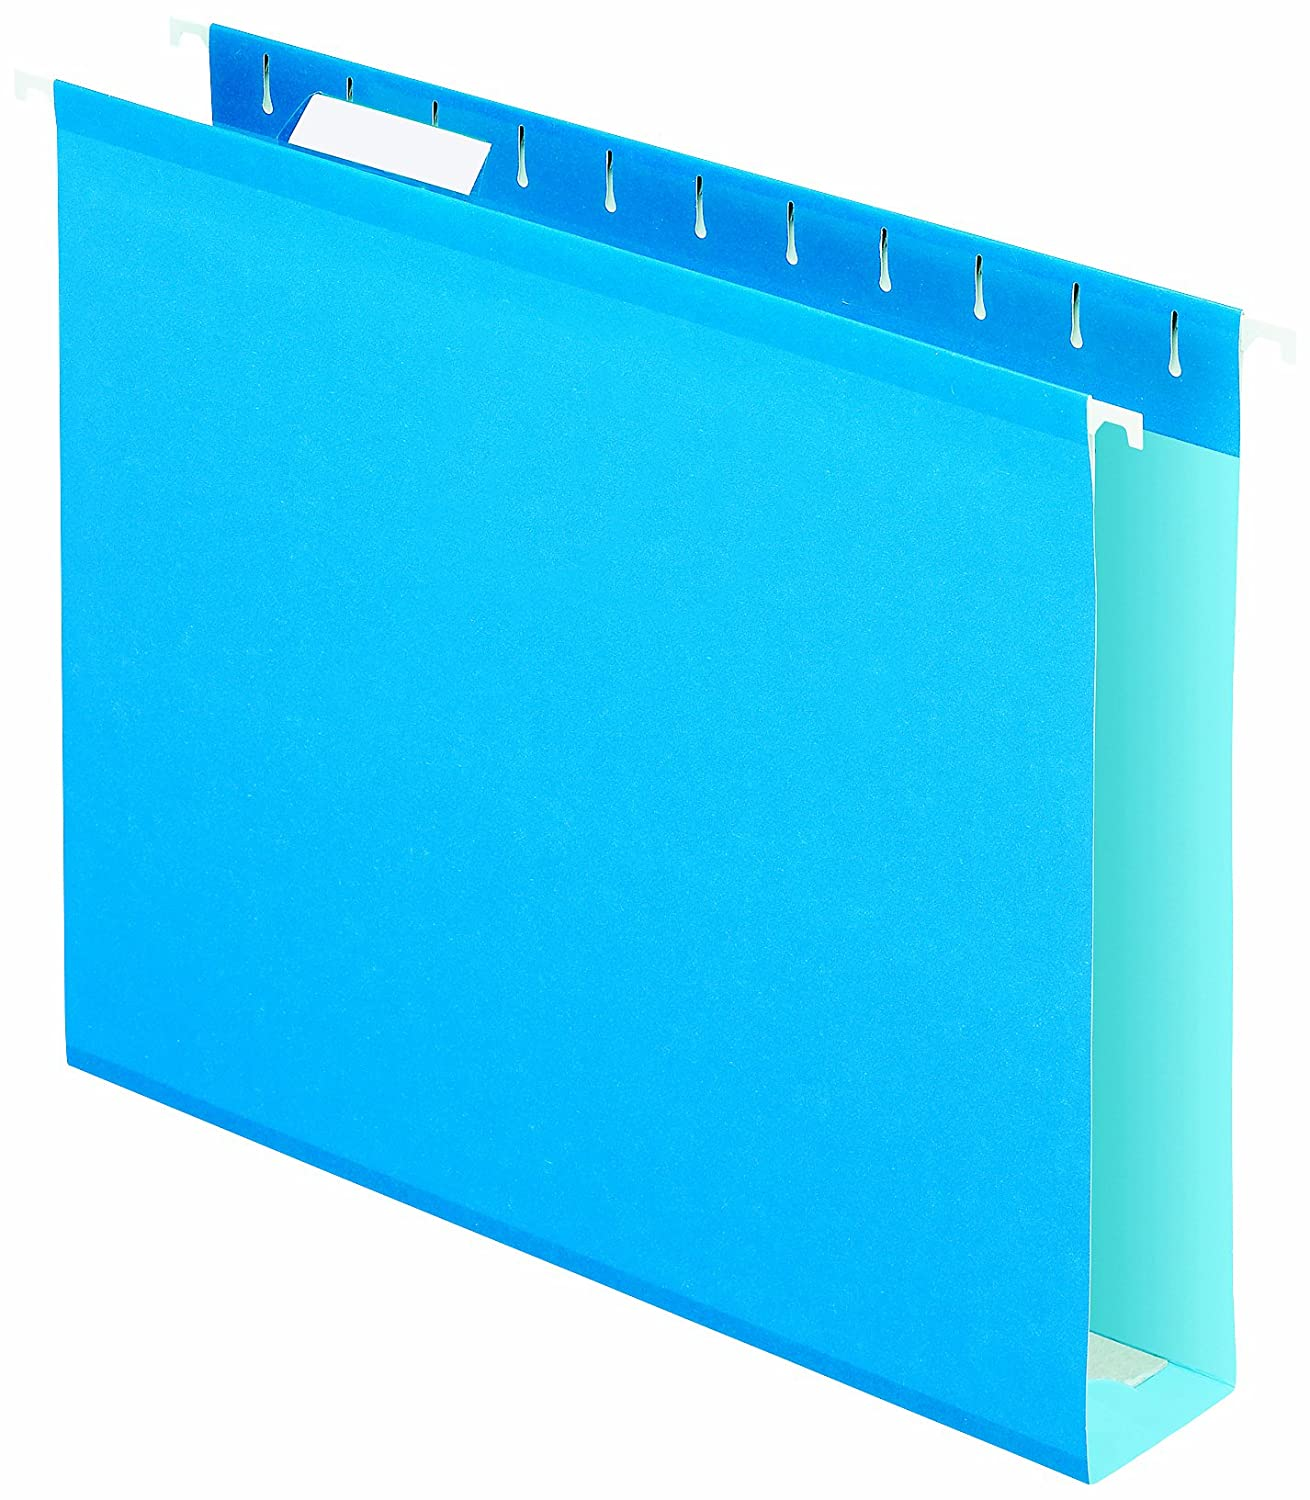 Pendaflex Extra Capacity Reinforced Hanging Folders, 2-Inch Capacity, Letter, Blue, 10/Box 018405